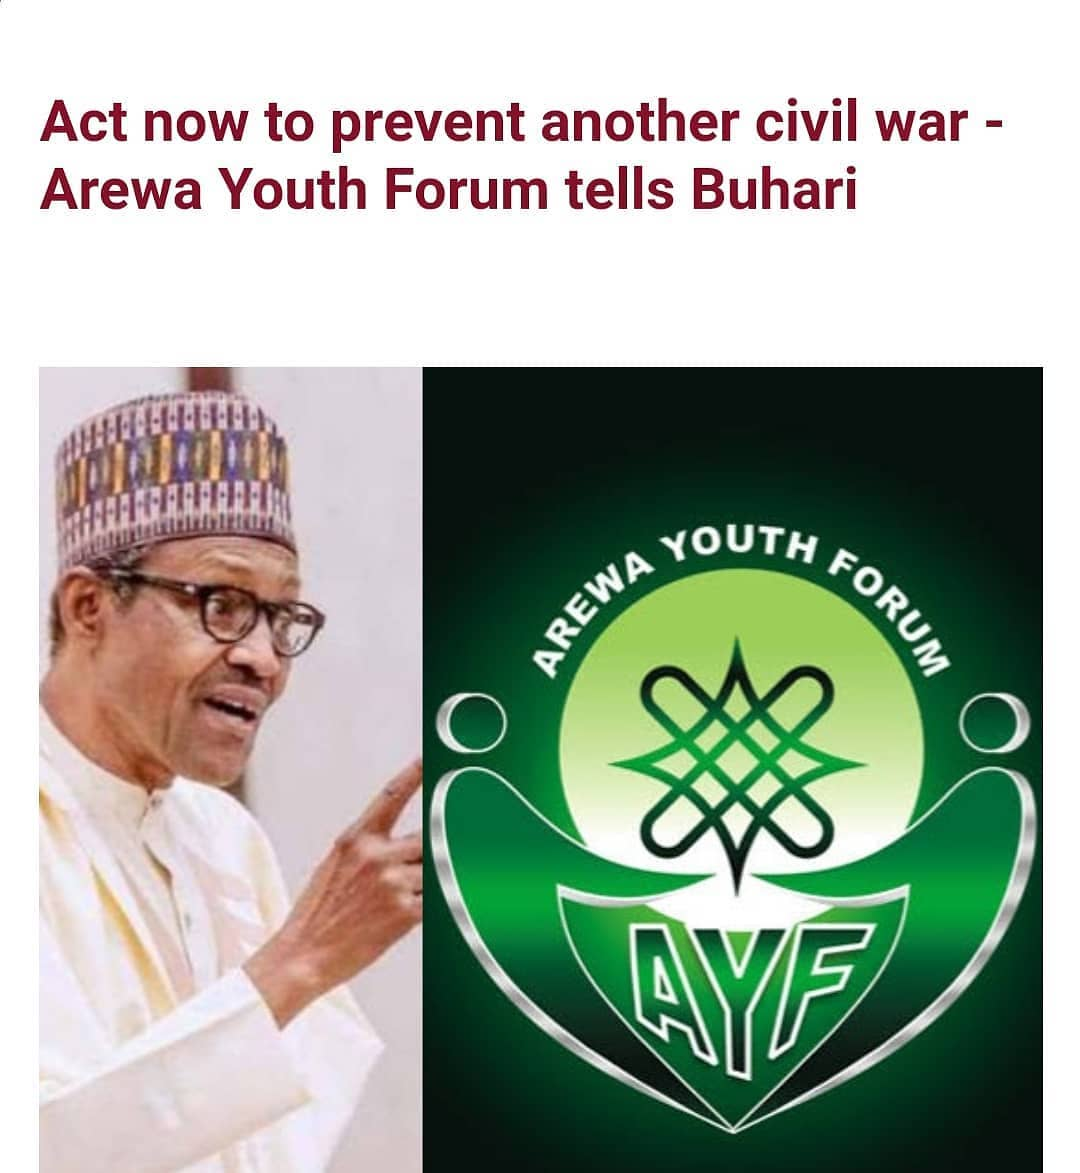 """Arewa Youth Forum (AYF) has urged the Federal Government to take urgent actions to douse the tension across the country caused by activities of armed Fulani herdsmen.  The group pointed out that another civil war could break out if the government doesn't act.  The northern youths said this in a statement signed by its National President, Alhaji Ibrahim Gambo Gujungu, Wednesday, Feb 17, in Kaduna.  They said: """"The Arewa Youth Forum is worried by the prevailing impasse and rising tension across the country precipitated by the quit notice given to Fulani herdsmen by the Ondo State Governor Rotimi Akeredolu and the actions that had trailed that incident.  """"As it stands, owning to the actions of non-state actors and inaction of state actors, mainly the Federal Government and the state governors, the country is fast drifting and action must be taken immediately to stem this drift.  """"After keeping silent for a long time, the Federal Government has, again, resorted to its usual rhetoric of issuing statements that over time had not made any impact on the situation of things in the country. Instead, the situation in the country has continued to deteriorate with each region looking within and resorting to self help as if the centre is no longer there.  """"It is in view of this that the AYF is calling on the Federal Government to immediately act, on behalf of Nigerians that voted them into power, to prevent another civil war in the country. Many citizens across the country are agitated in view of the prevailing situation.""""  According to the Arewa youths, unity of the country could only be achieved if government makes haste in dealing with insecurity, poverty, deprivation and endemic unemployment ravaging the people.  The statement continues: """"There is a serious need for synergy between the Federal Government and the states to achieve all these and many more. State governors should be told that government's inability to clamp down on criminals should not be an avenue to malign a w"""